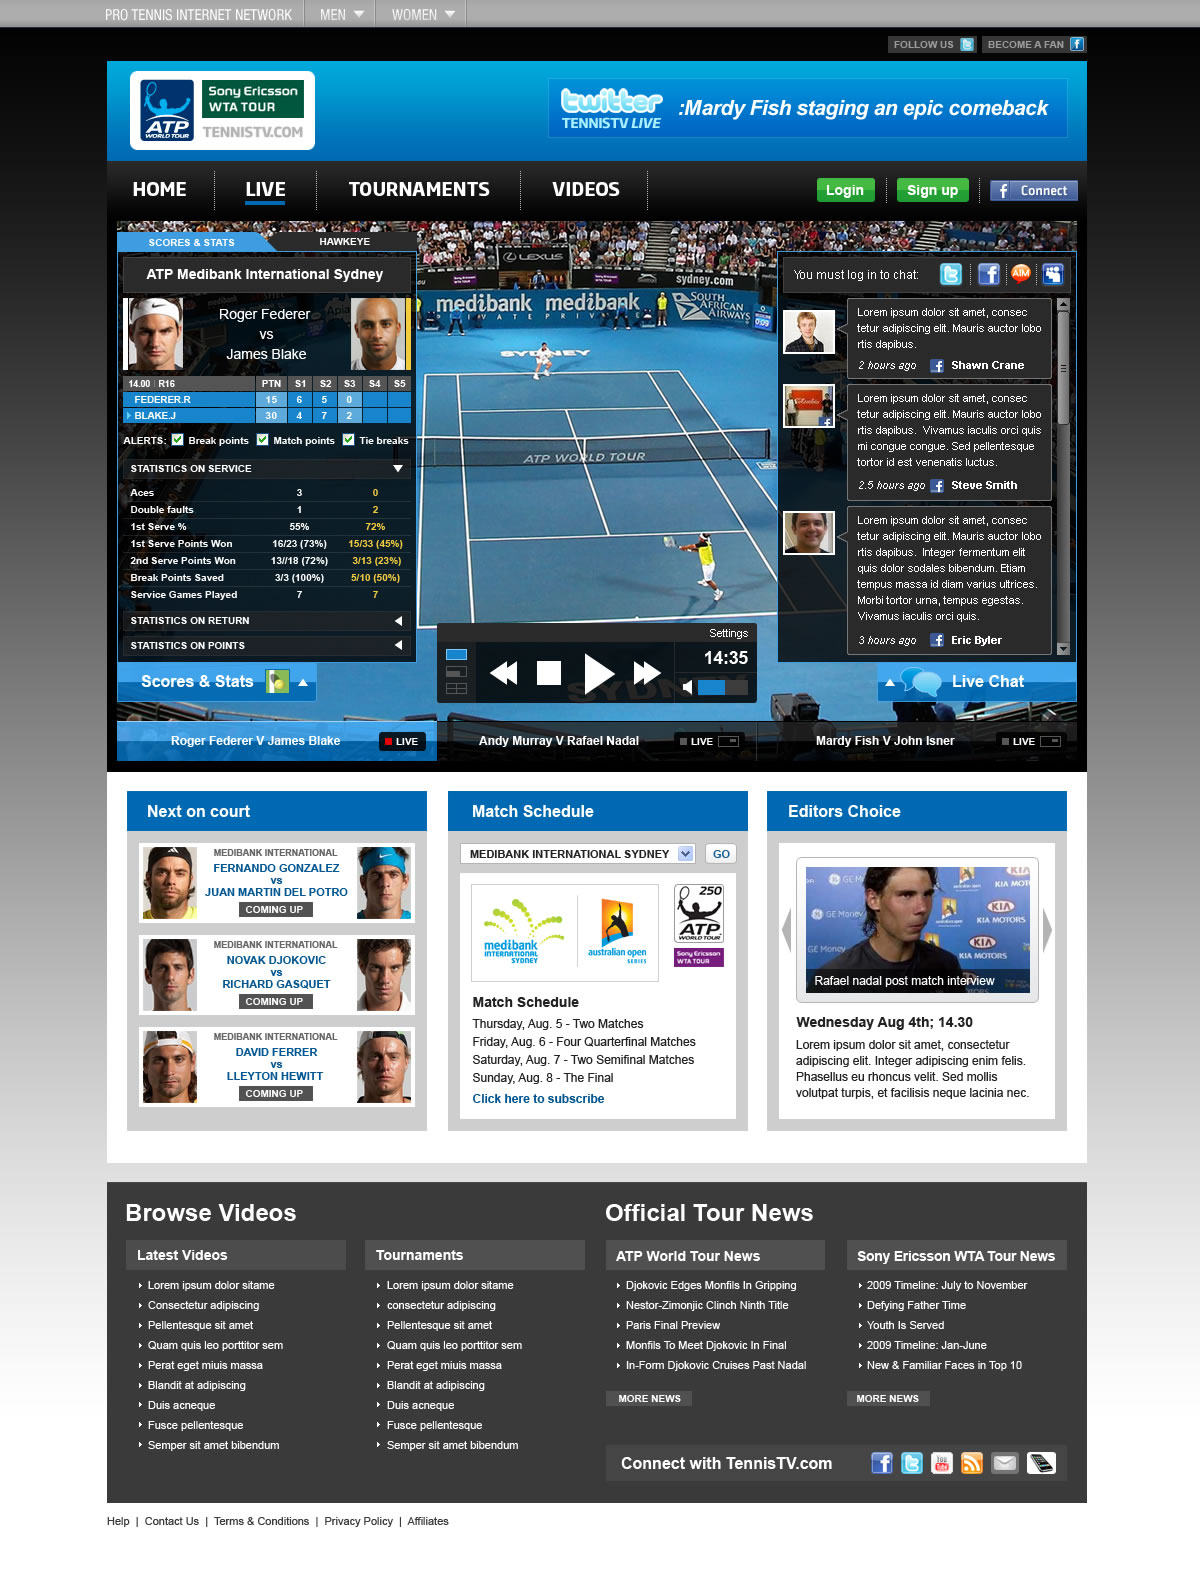 tennisTV_live_stats_and_chat_view